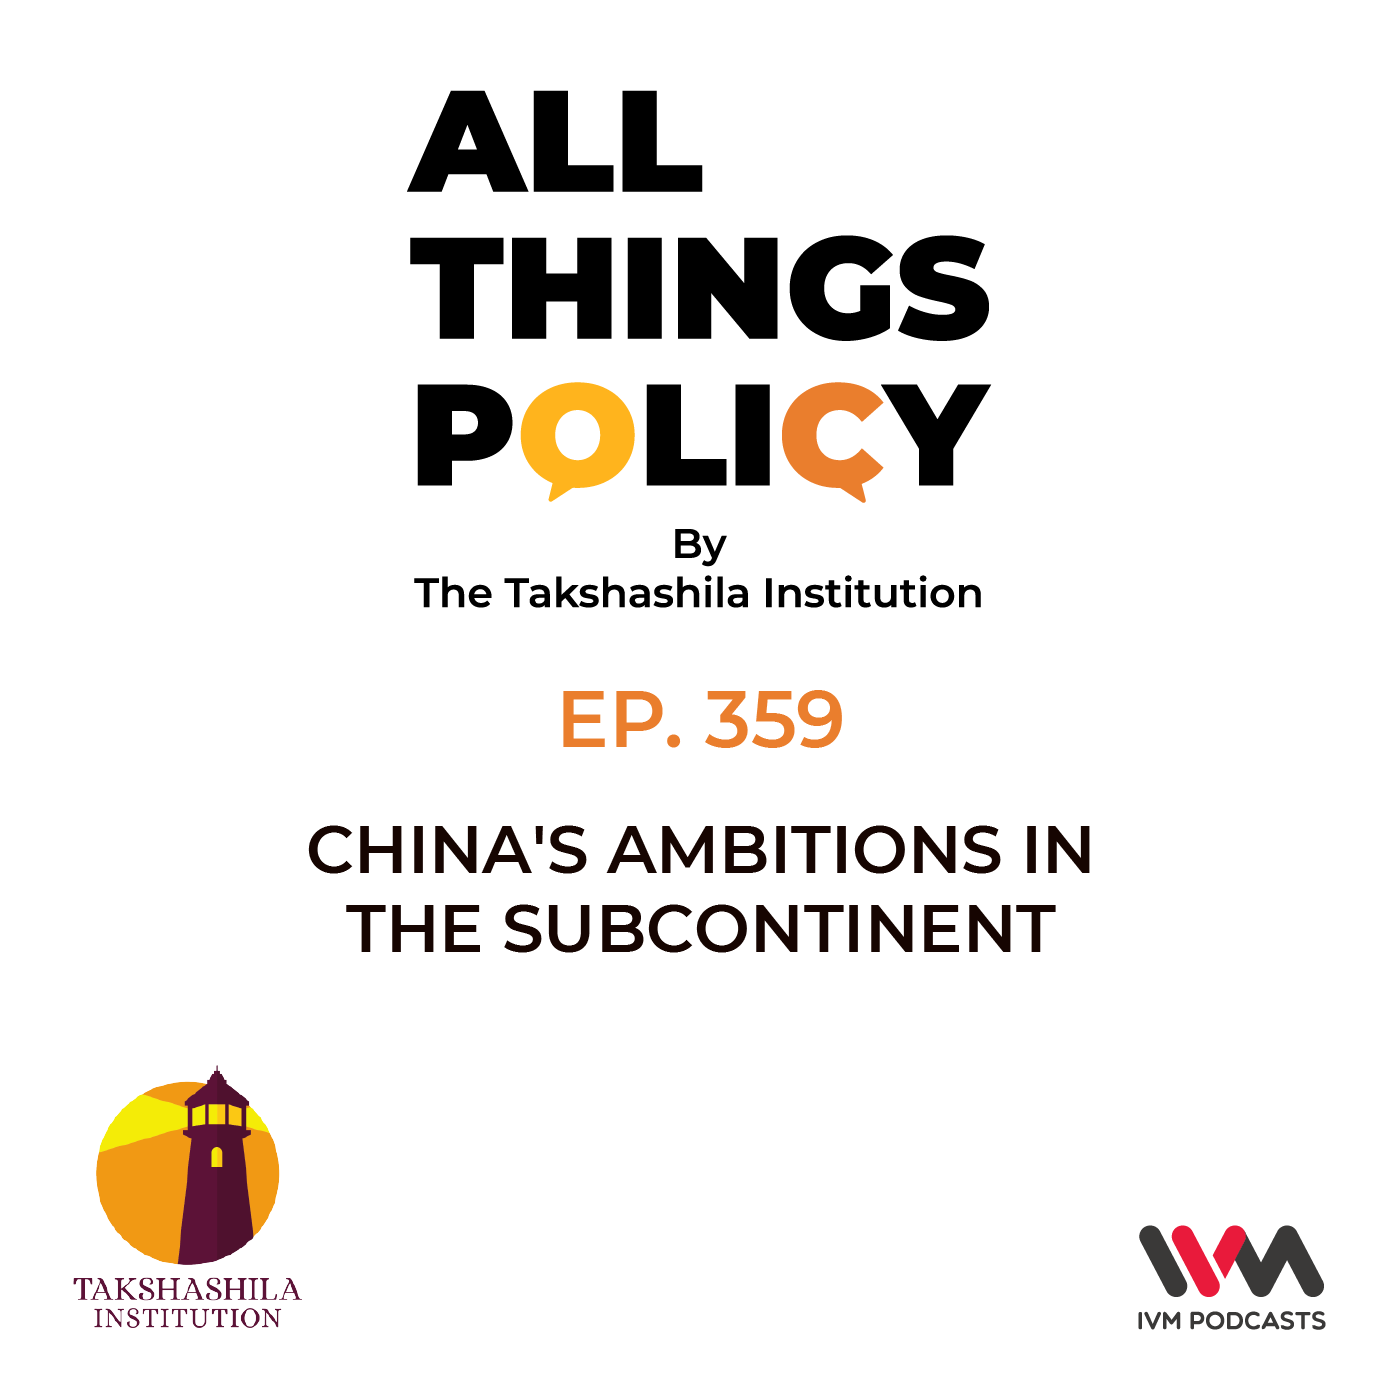 Ep. 359: China's Ambitions in the Subcontinent